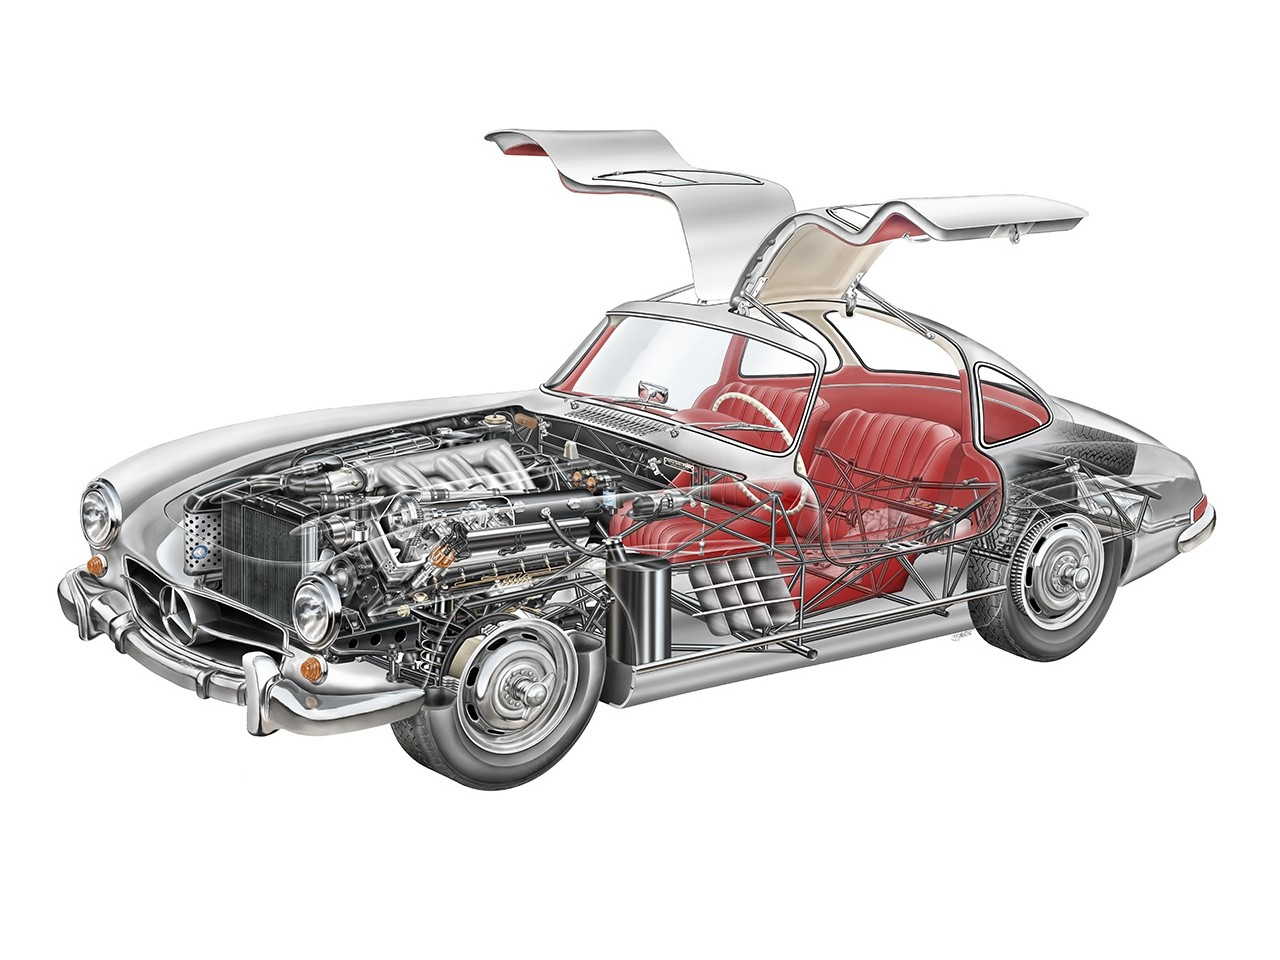 1954 Mercedes-Benz 300SL Gullwing W198